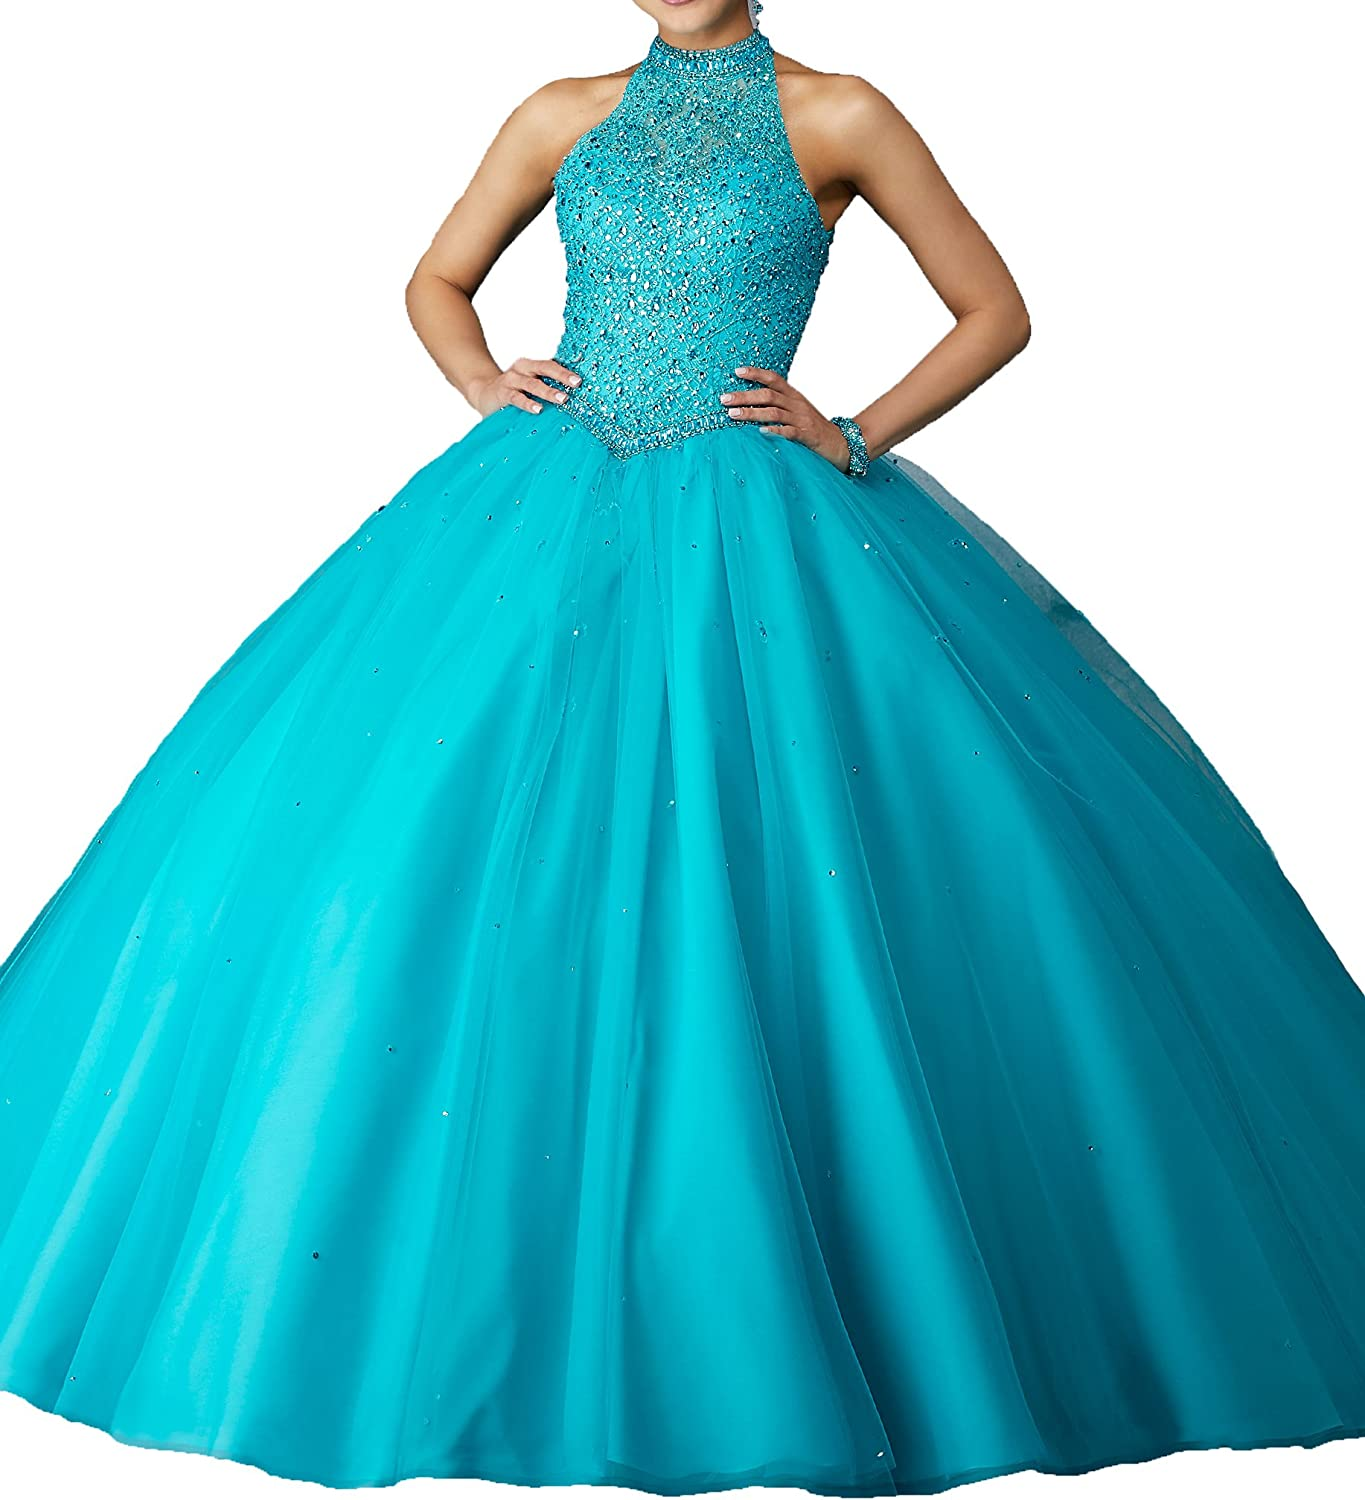 MFandy 2019 Women High Neck Sequin Ball Gowns Girls Quinceanera Dresses